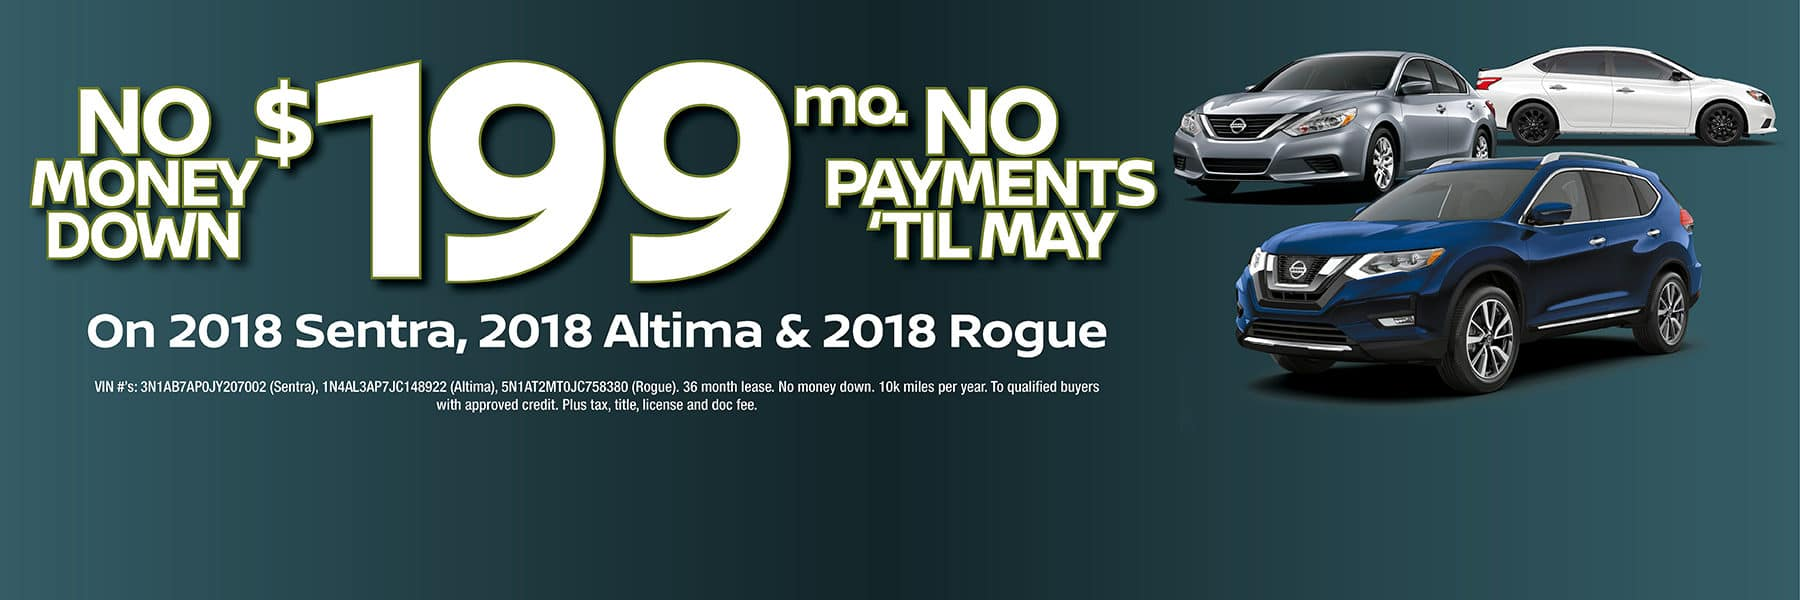 Take your pick! 2018 Nissan Altima, Sentra, or Rogue for $199 a month with No Money Down at Berman Nissan of Chicago!